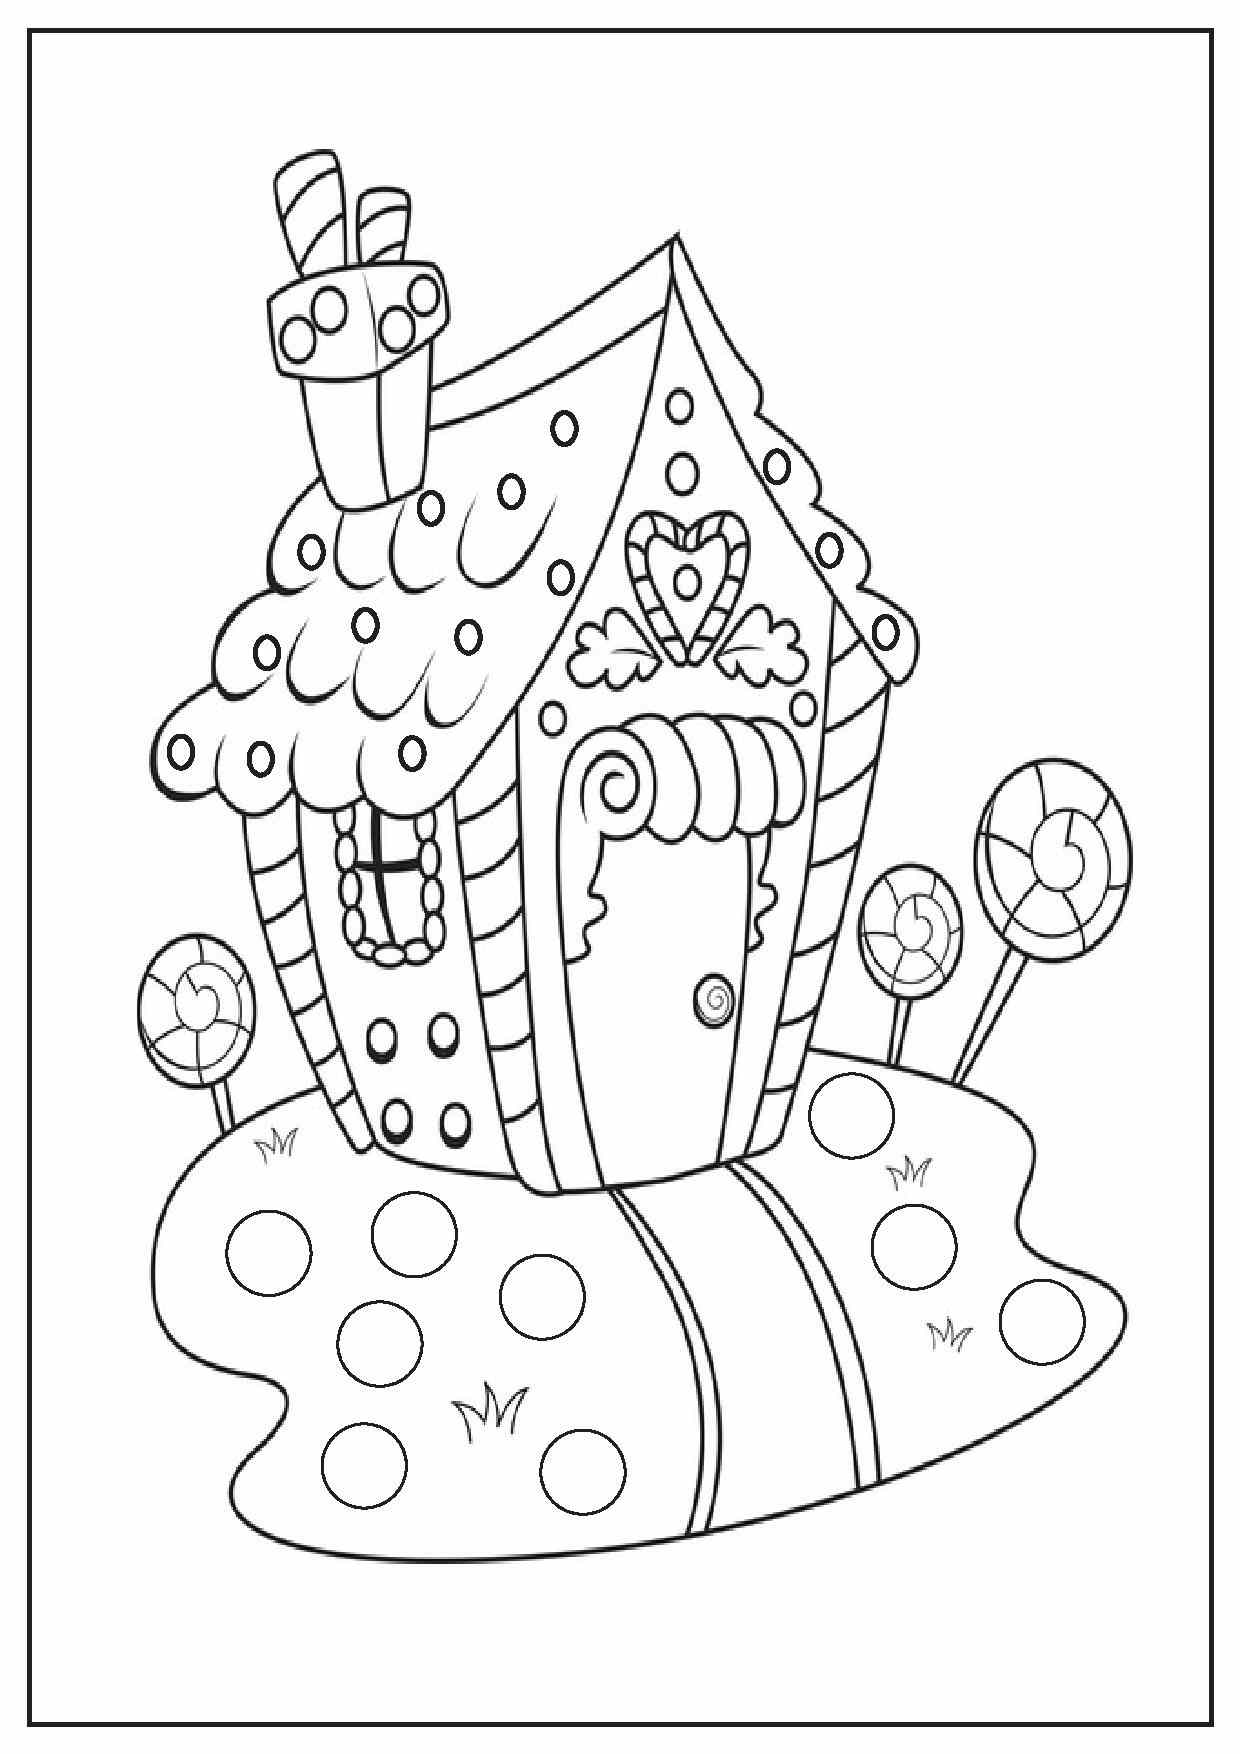 coloring sheets for christmas easy christmas coloring pages for kids at getcoloringscom christmas coloring for sheets